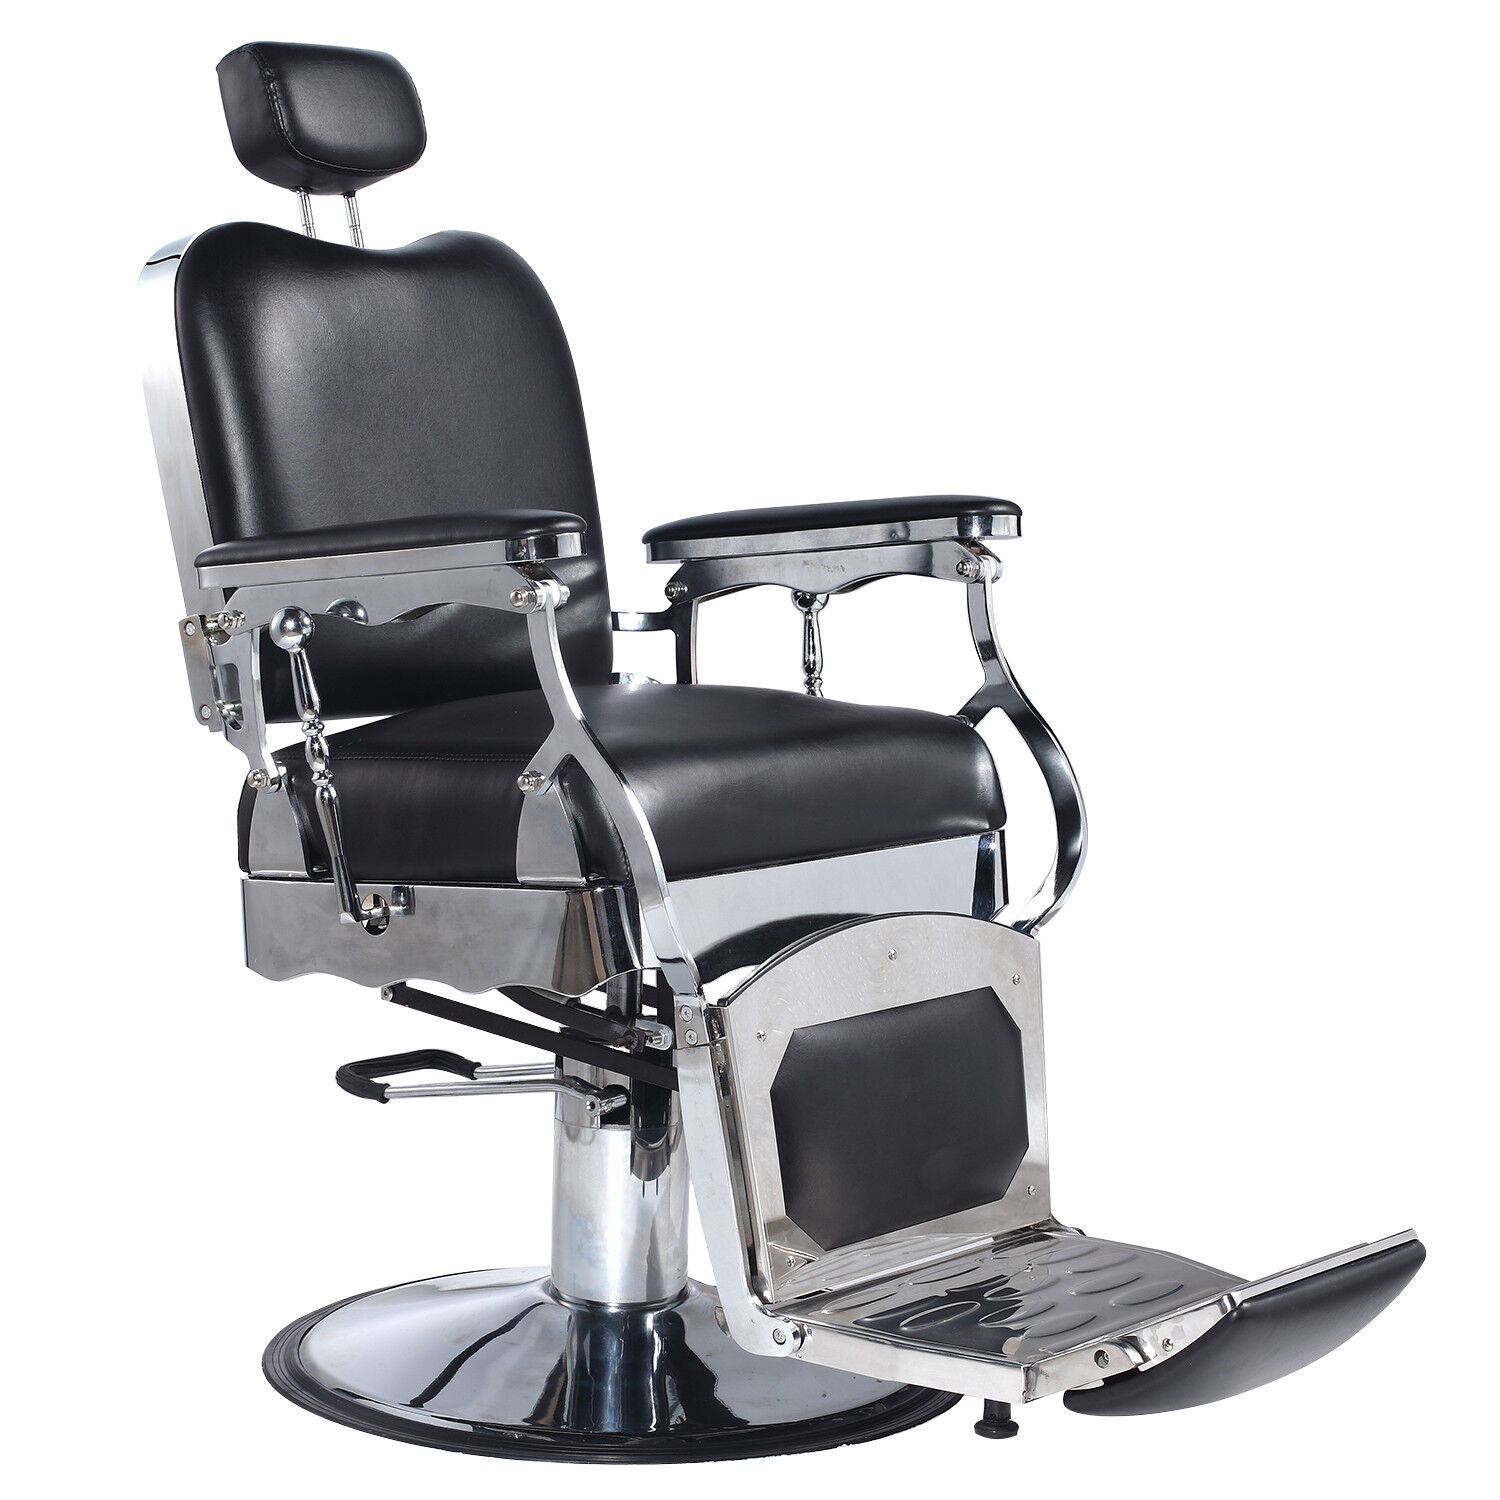 Black Heavy Duty Fashion Hydraulic Barber Chair Recline Salon Beauty Spa Shampoo 1